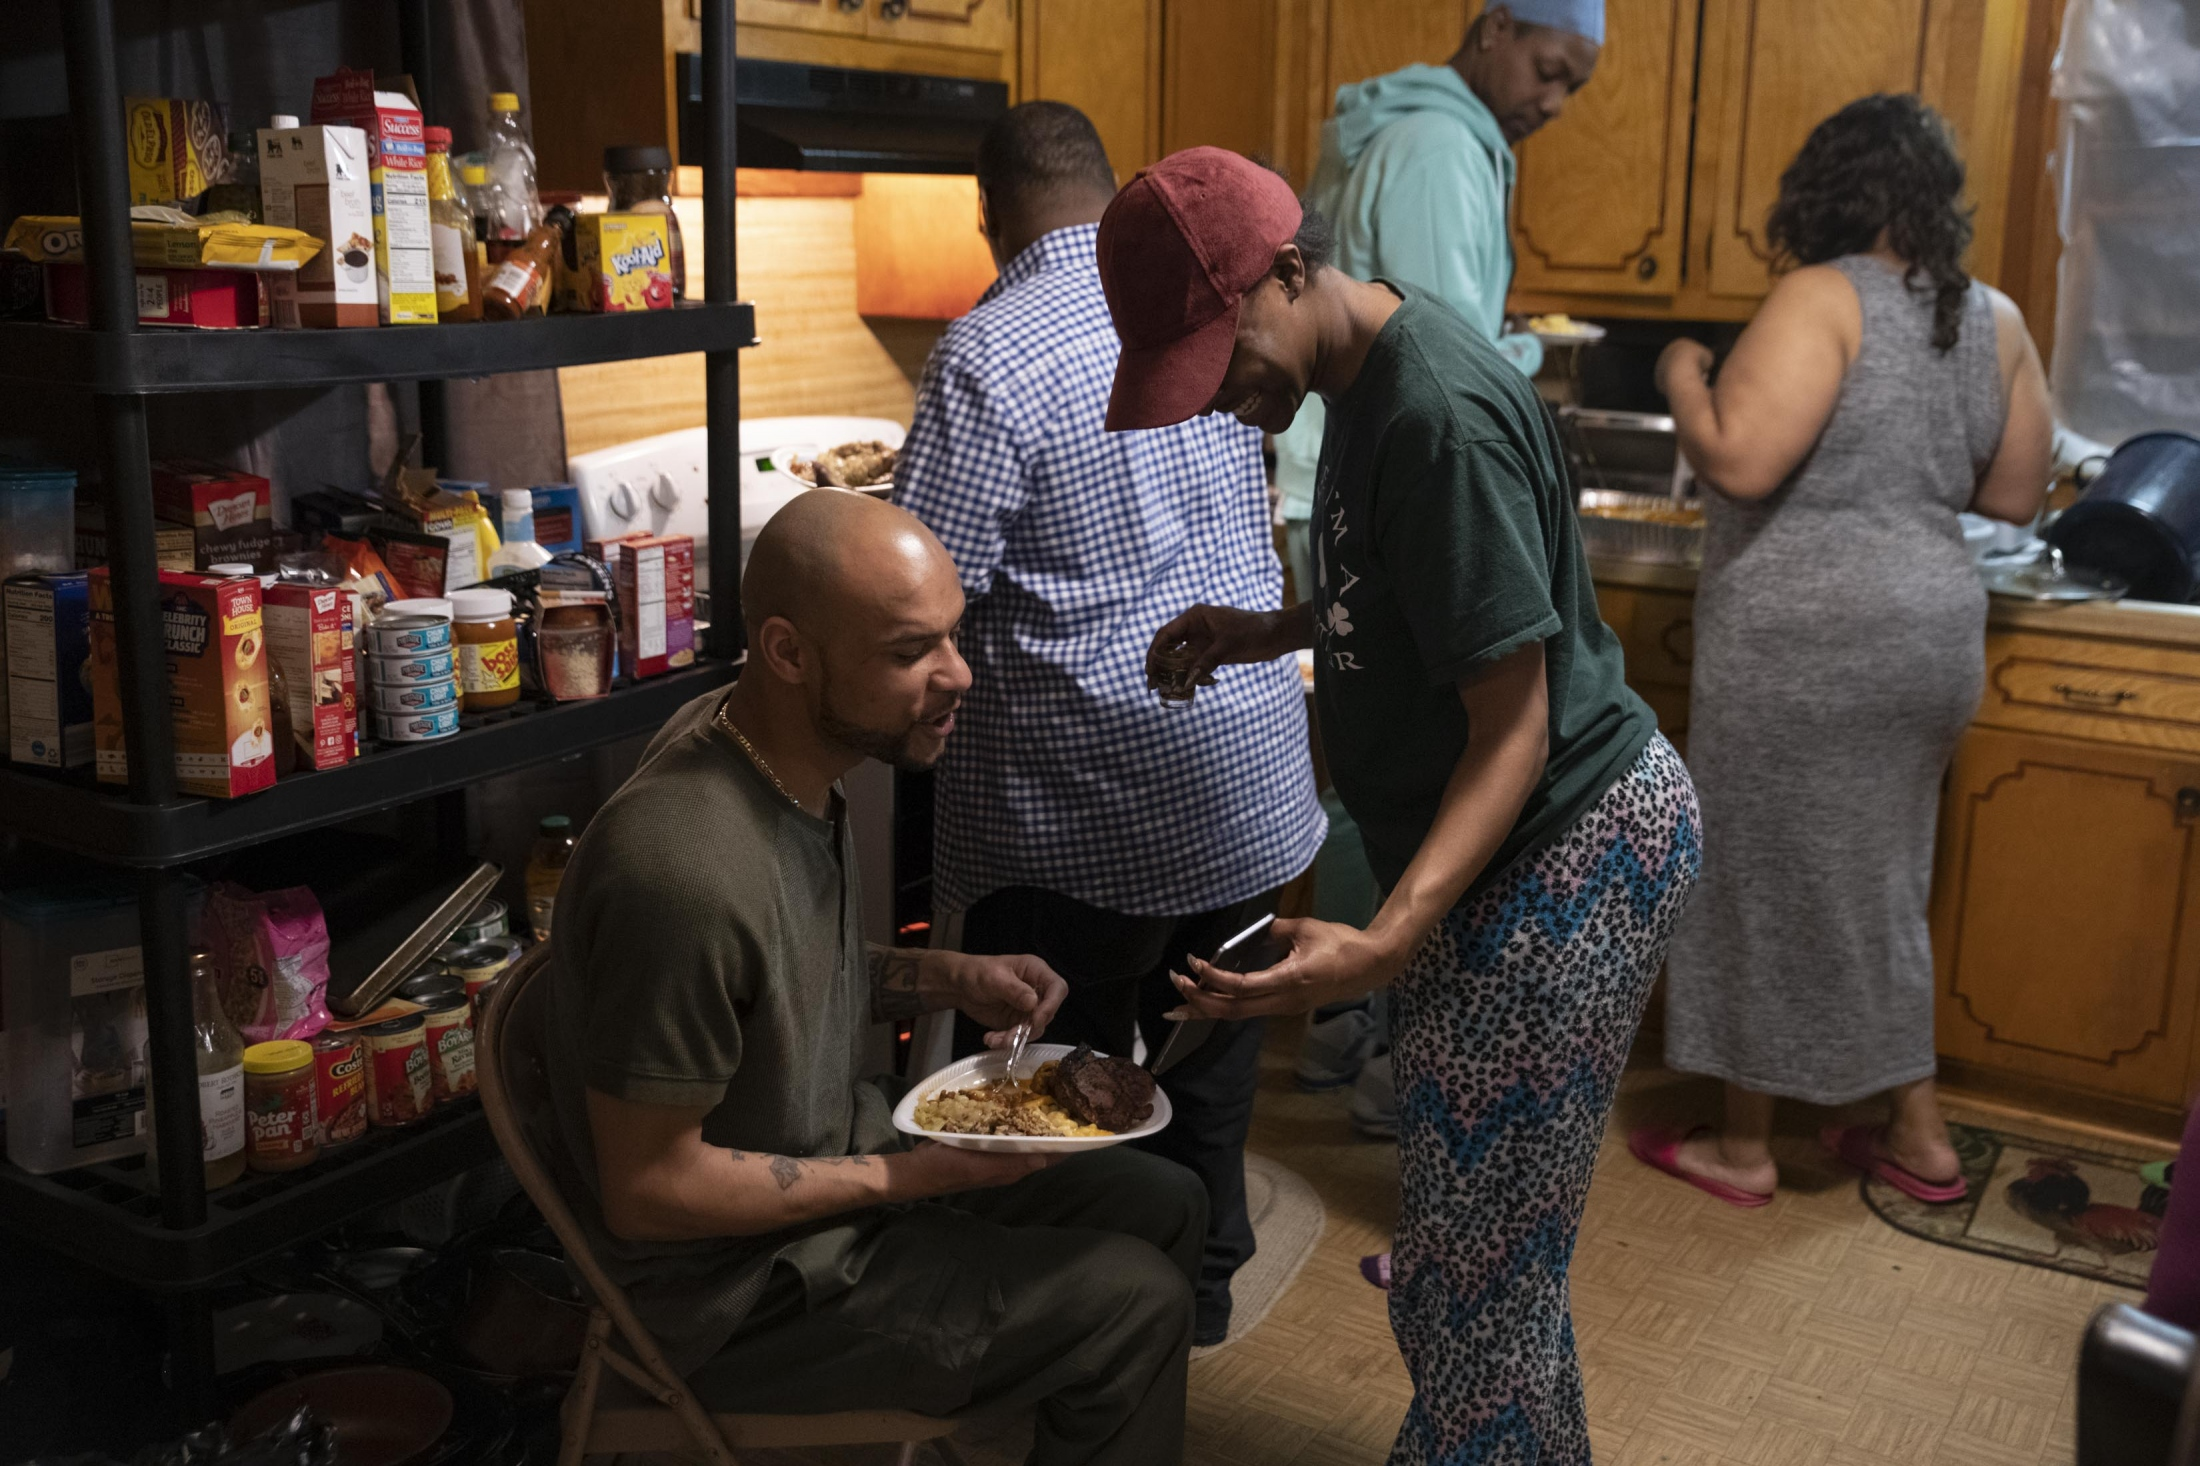 Family gathers for a welcome home dinner at Walika's house in Kannapolis. Oriana helps her uncle learn how to use his Iphone. He never used a smart phone before going to prison.